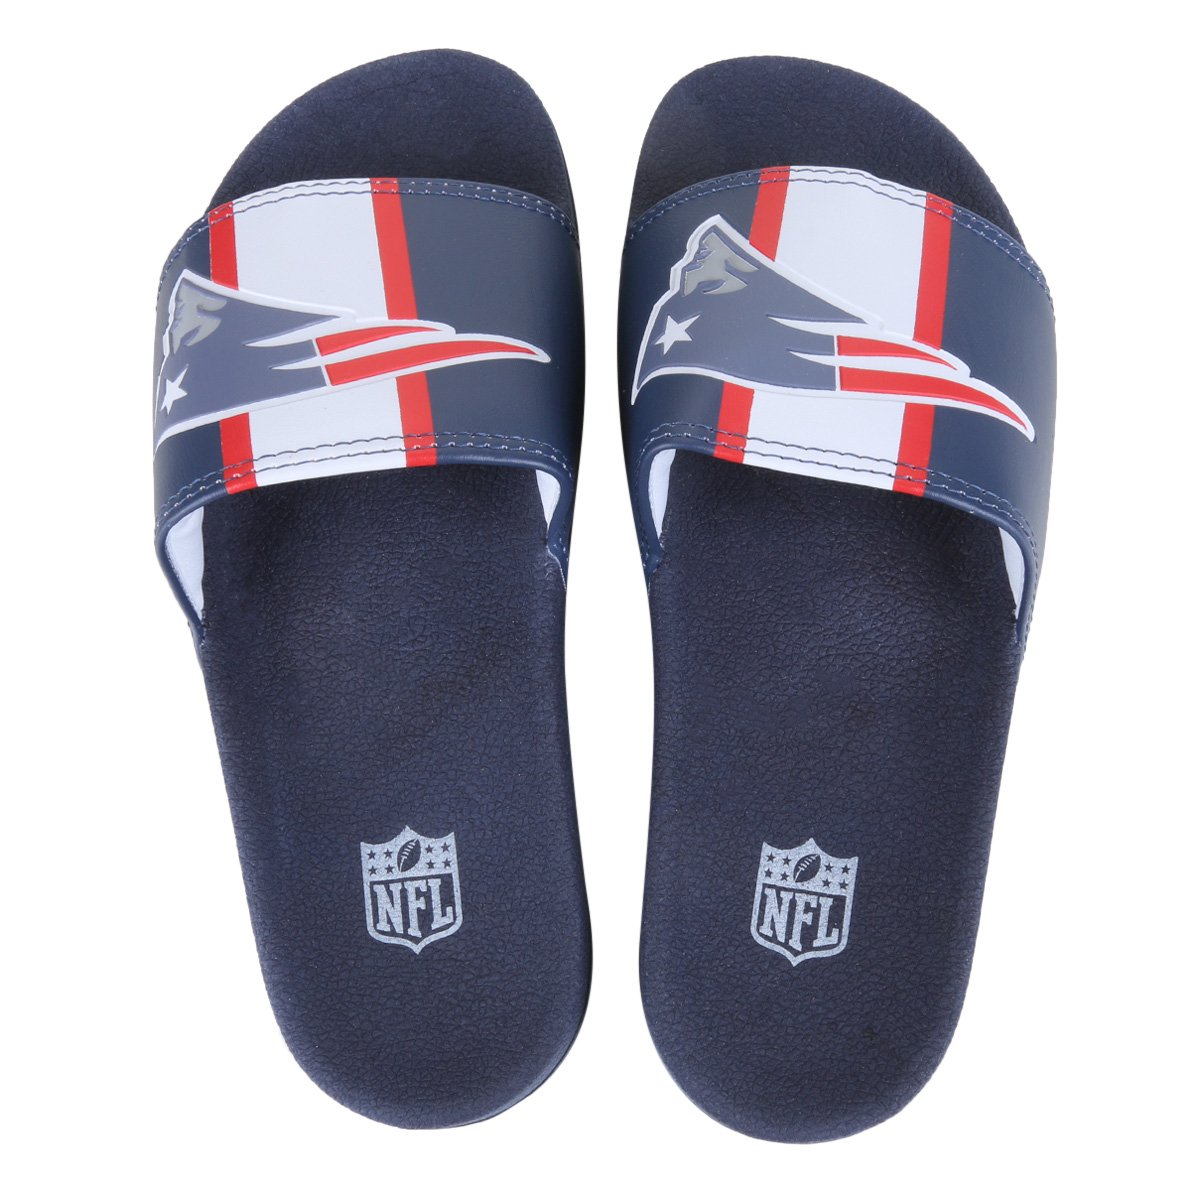 Chinelo Slide NFL New England Patriots Masculino